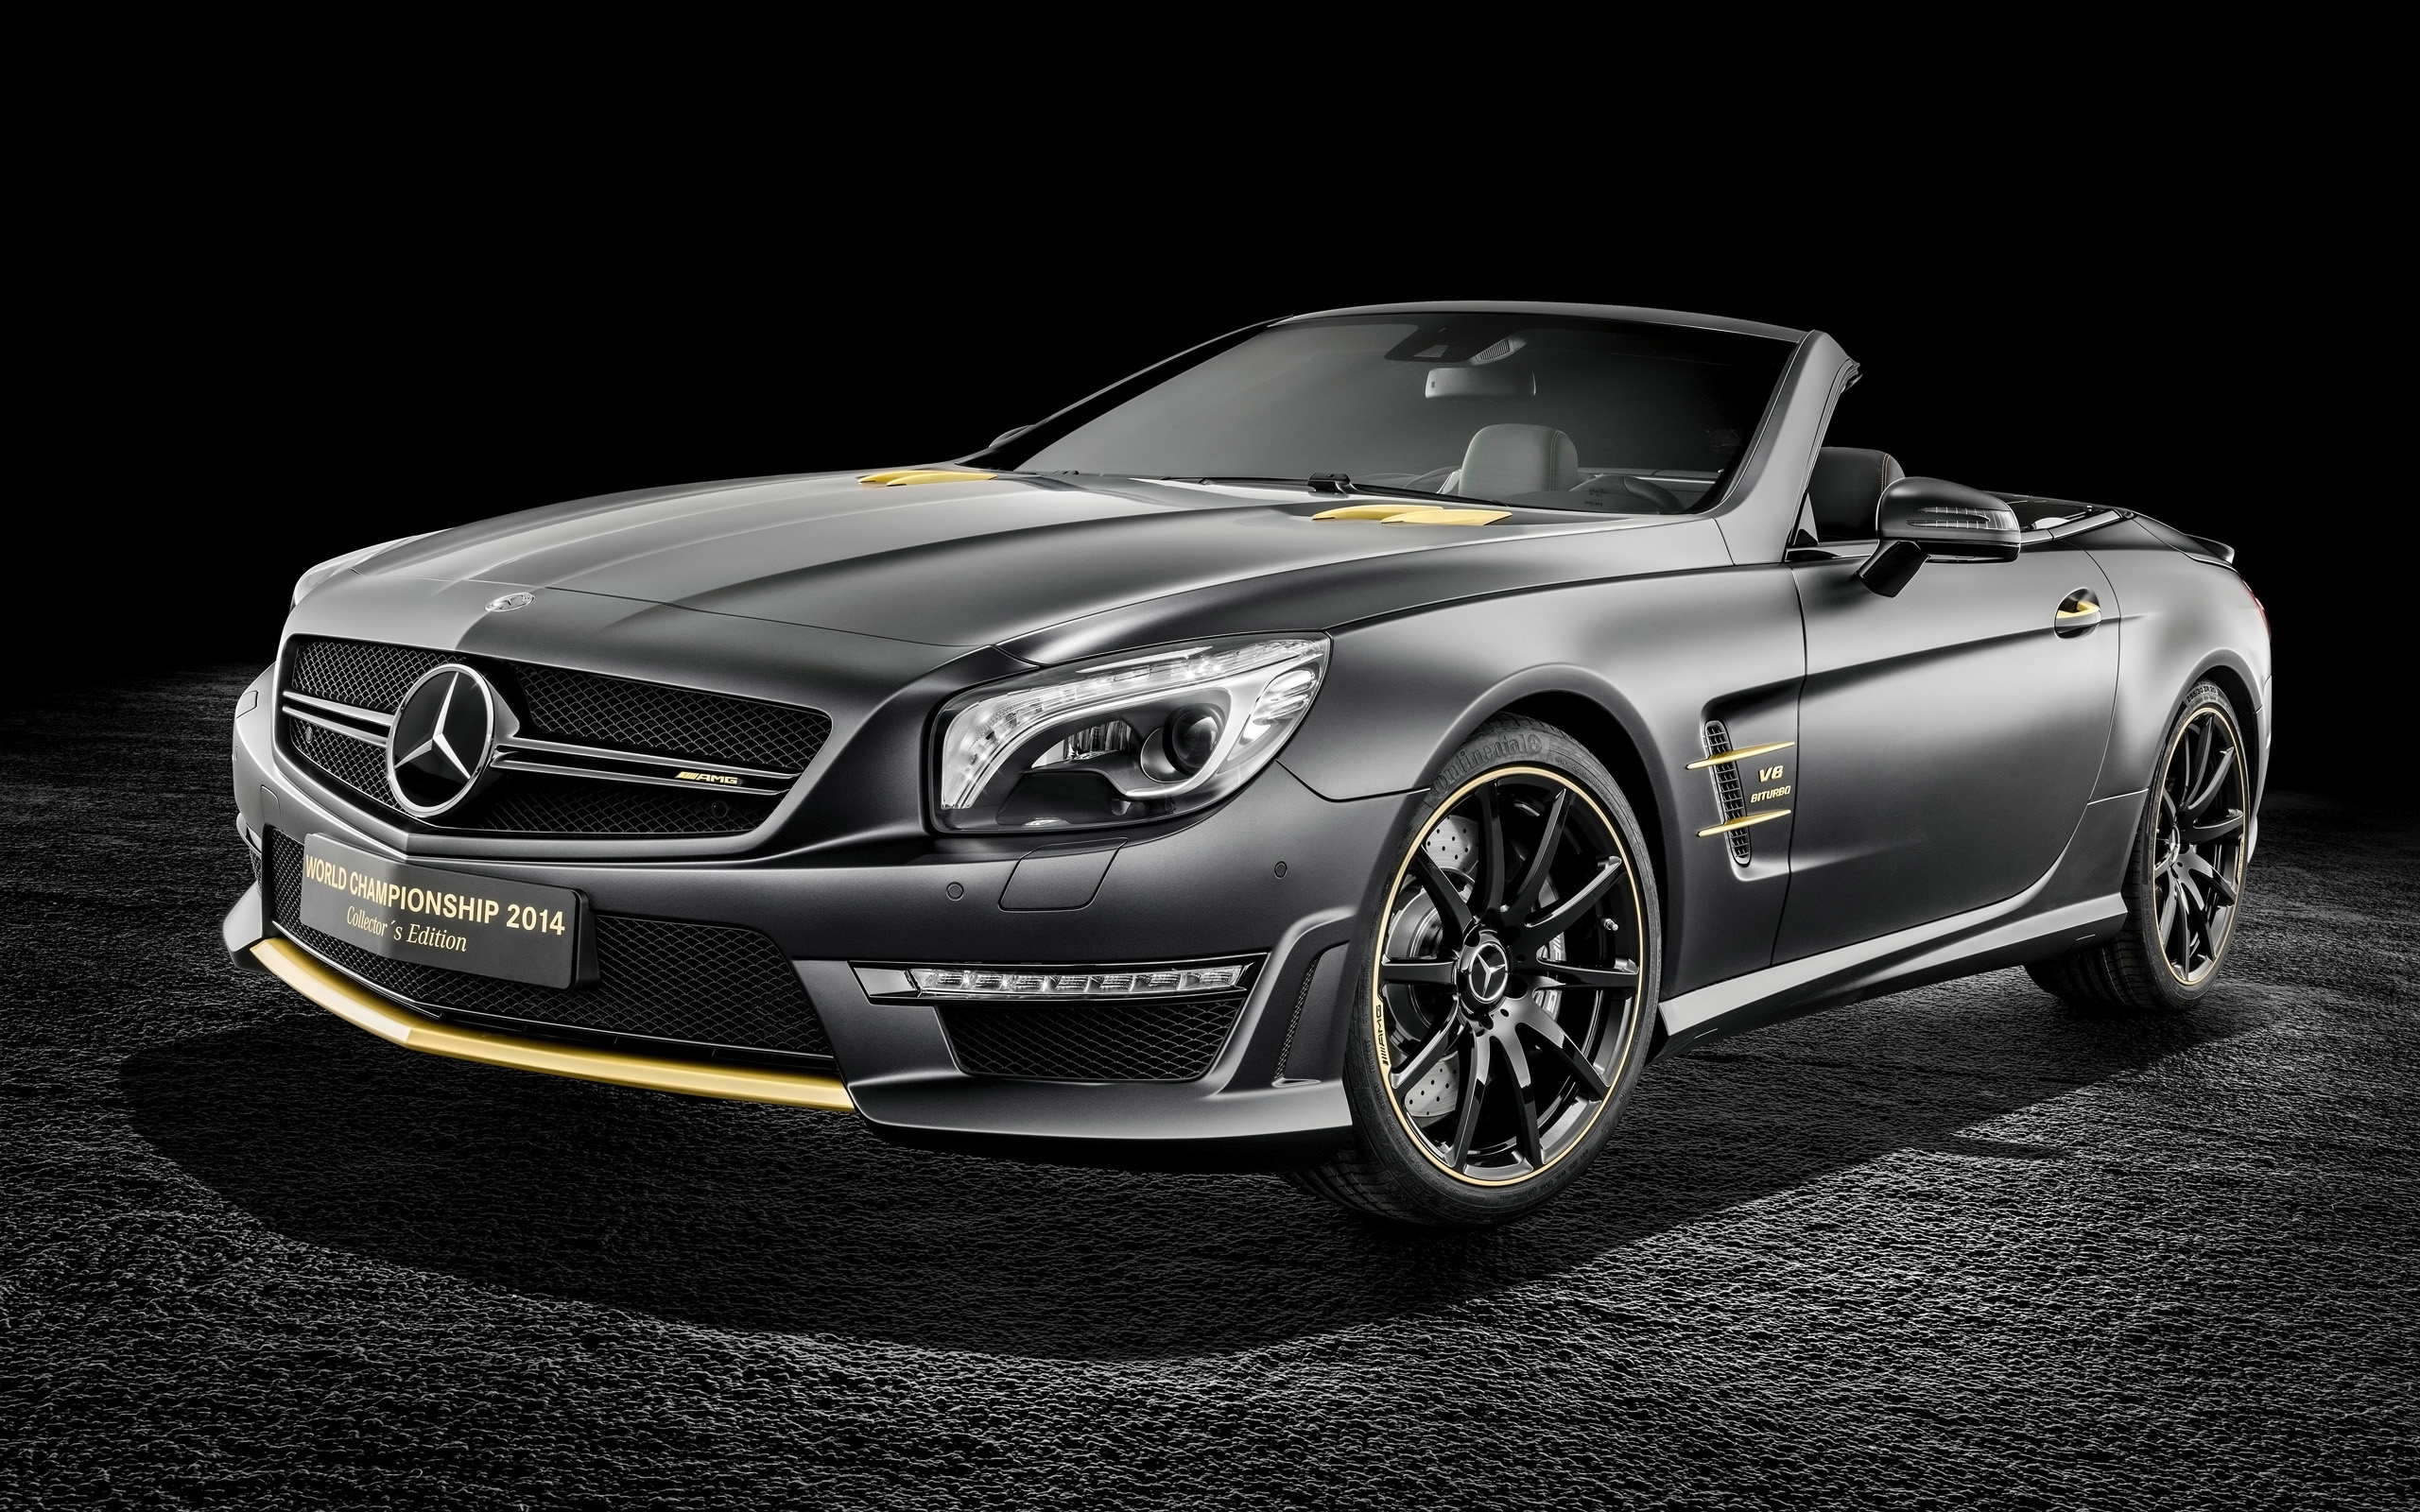 2015 mercedes benz sl 63 amg world championship wallpaper hd car wallpapers id 4982. Black Bedroom Furniture Sets. Home Design Ideas